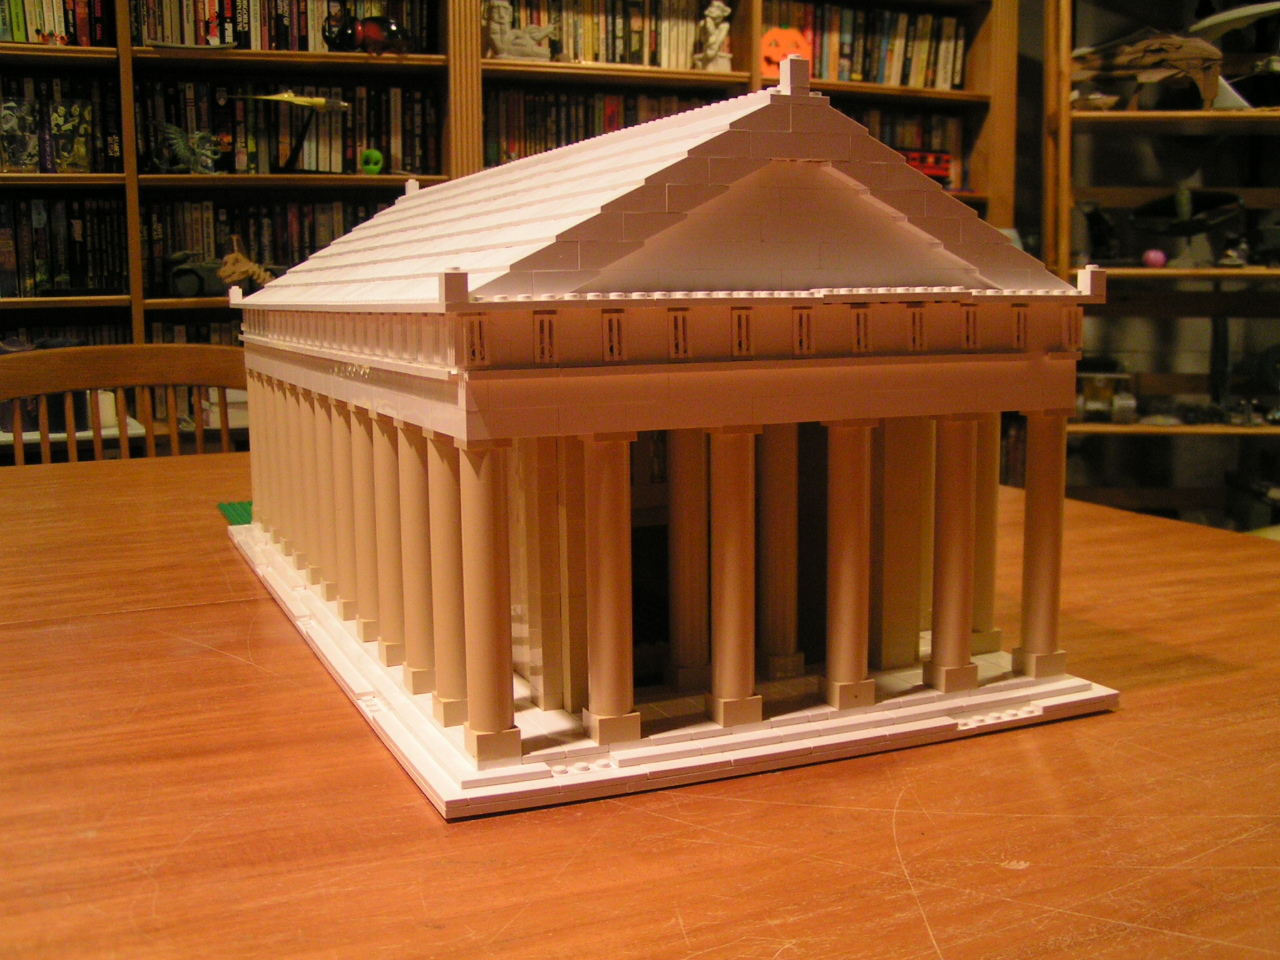 greektemple0002.jpg